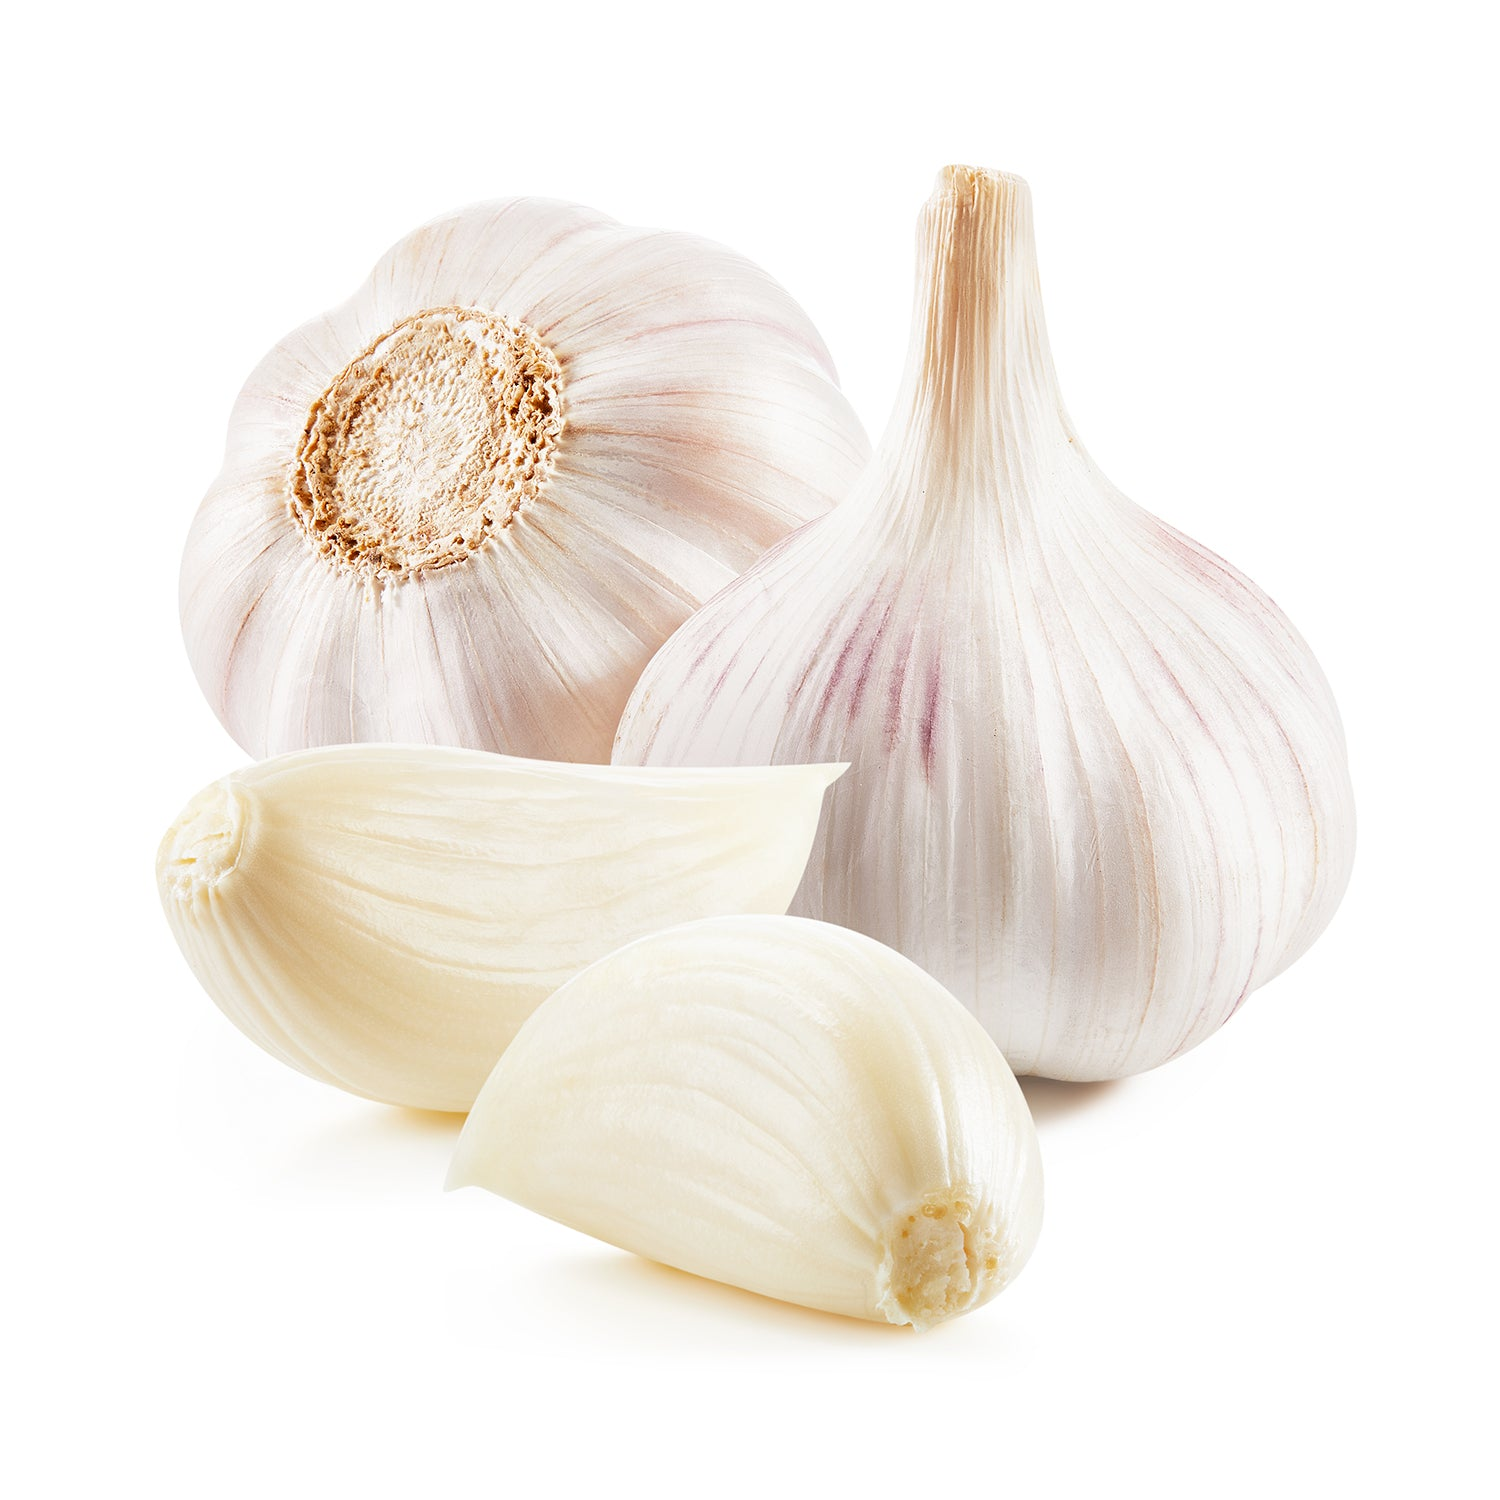 Garlic (5pcs)